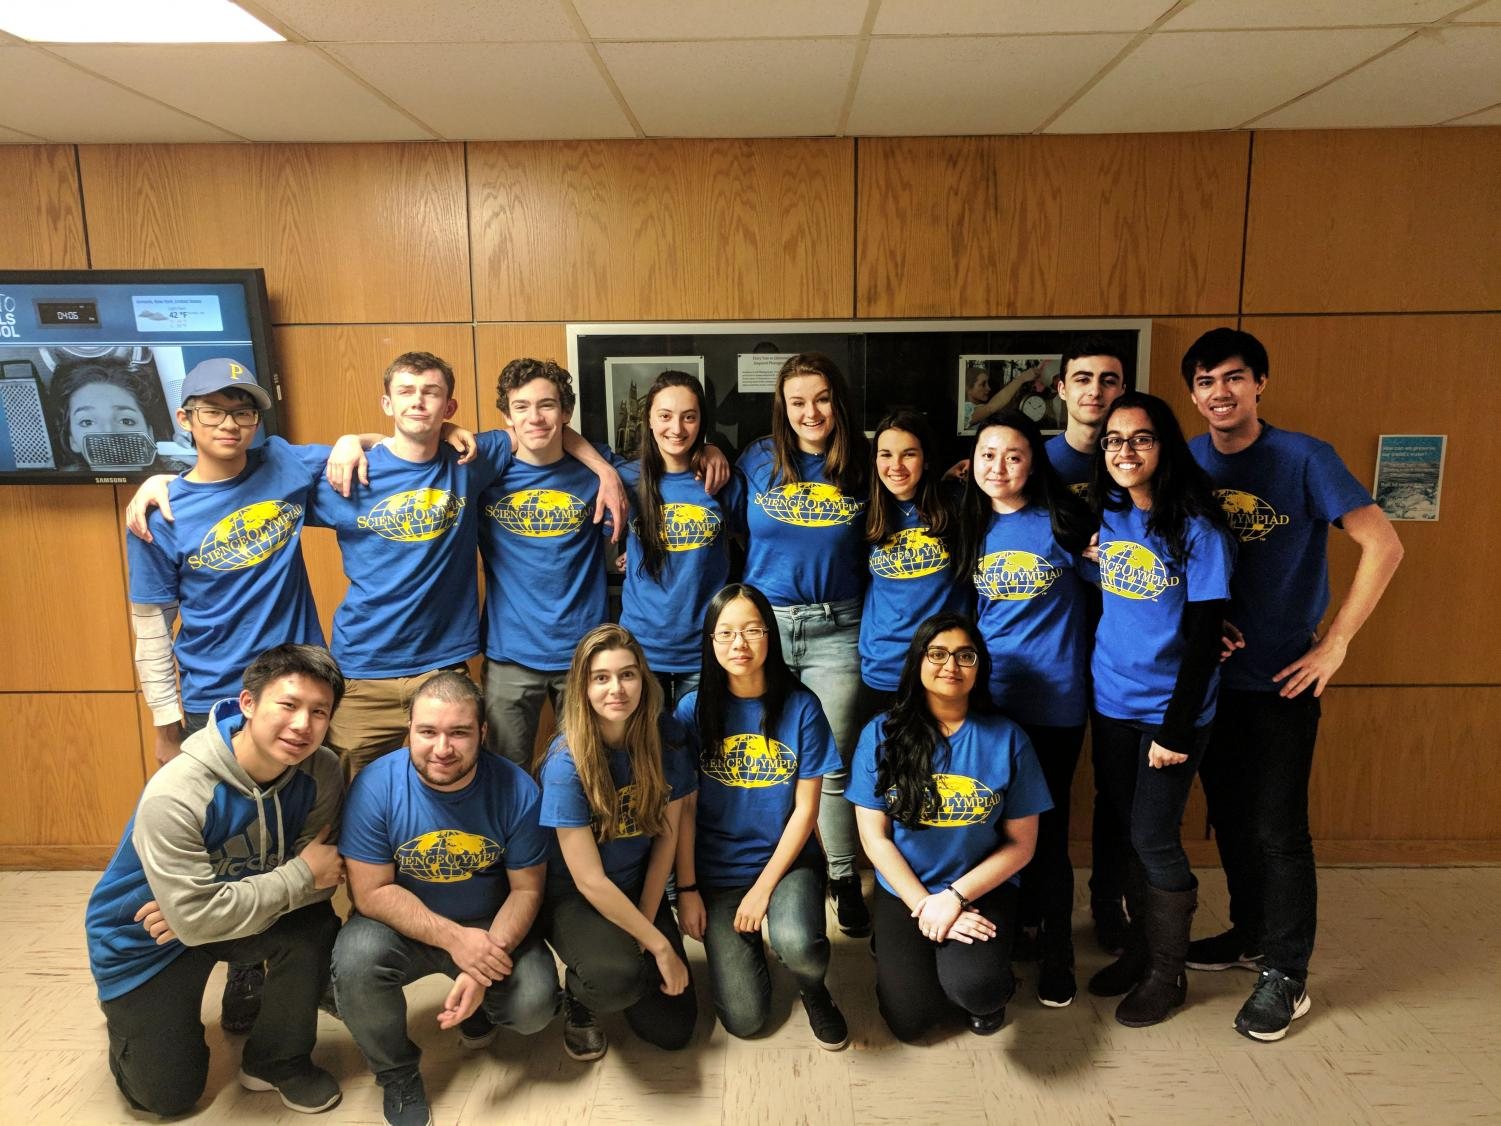 PMHS Science Olympiad competitors savor the excitement of competition.